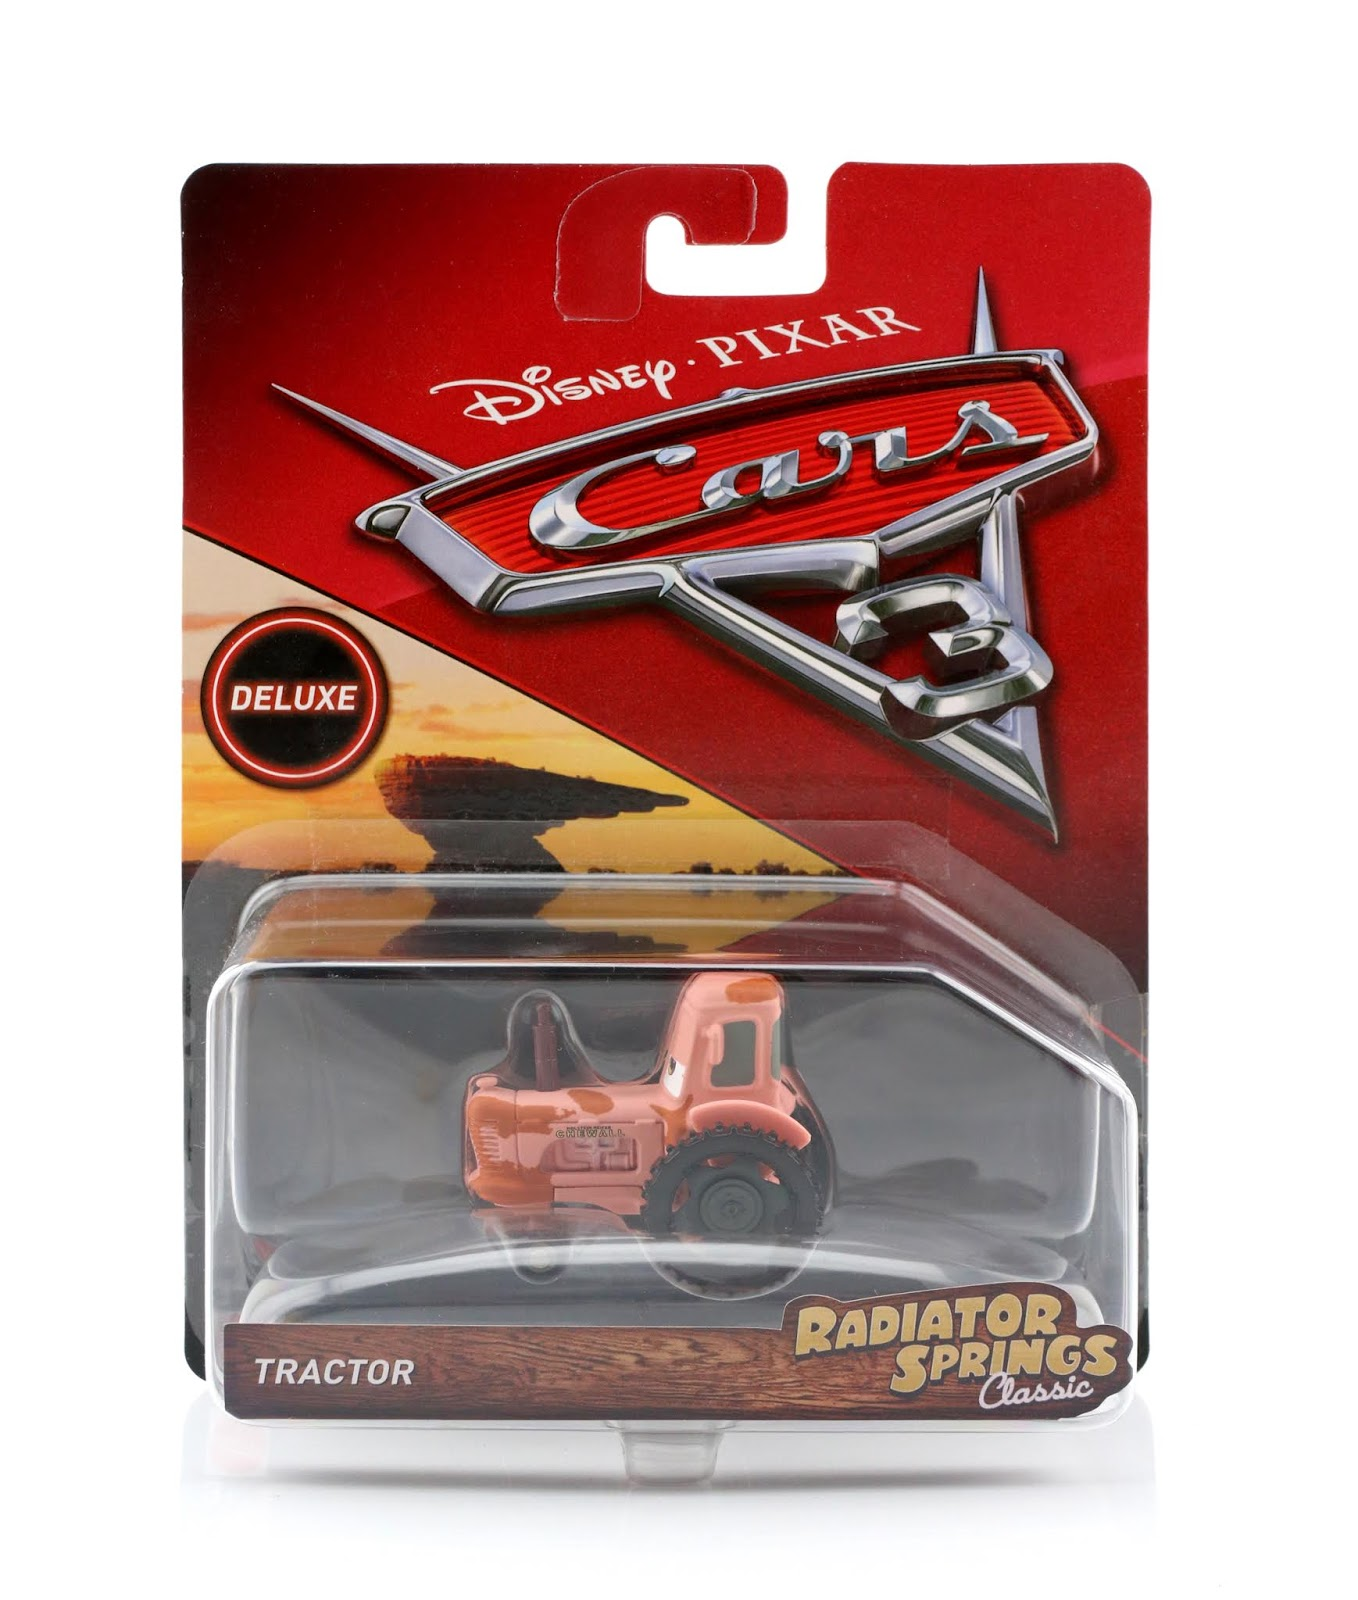 cars 3 radiator springs classic tractor diecast